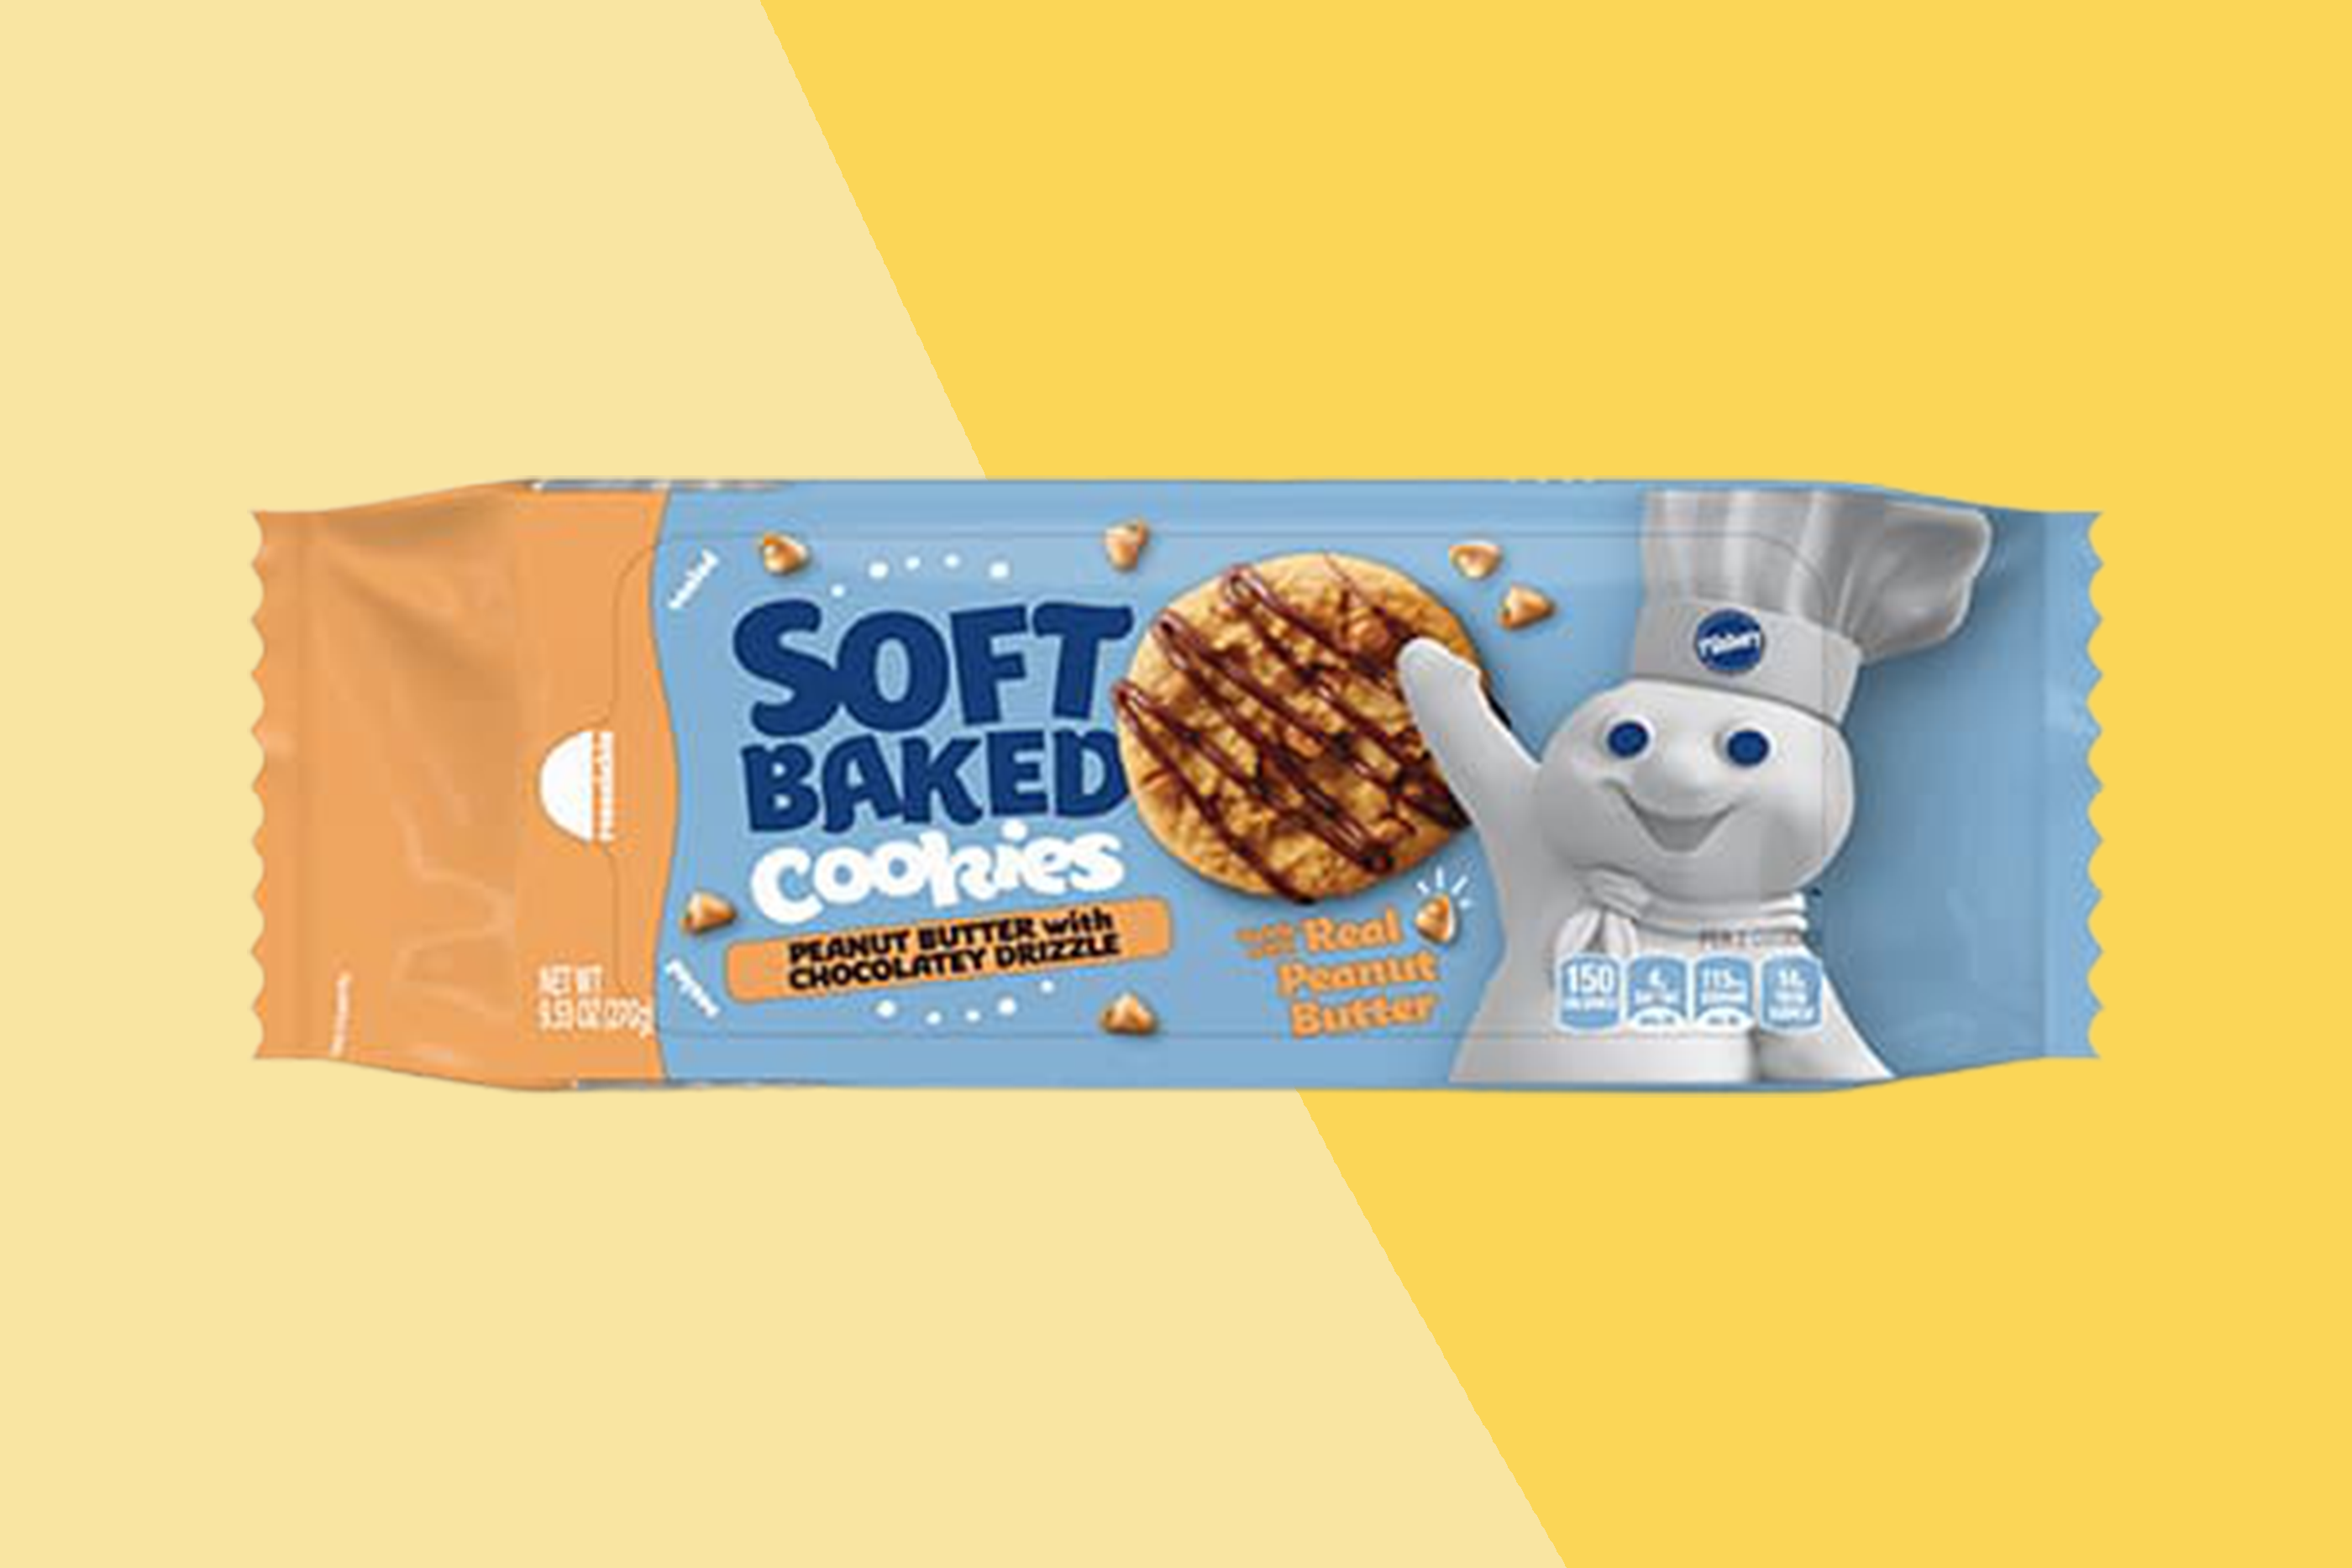 pillsbury soft baked cookies in peanut butter chocolate chip